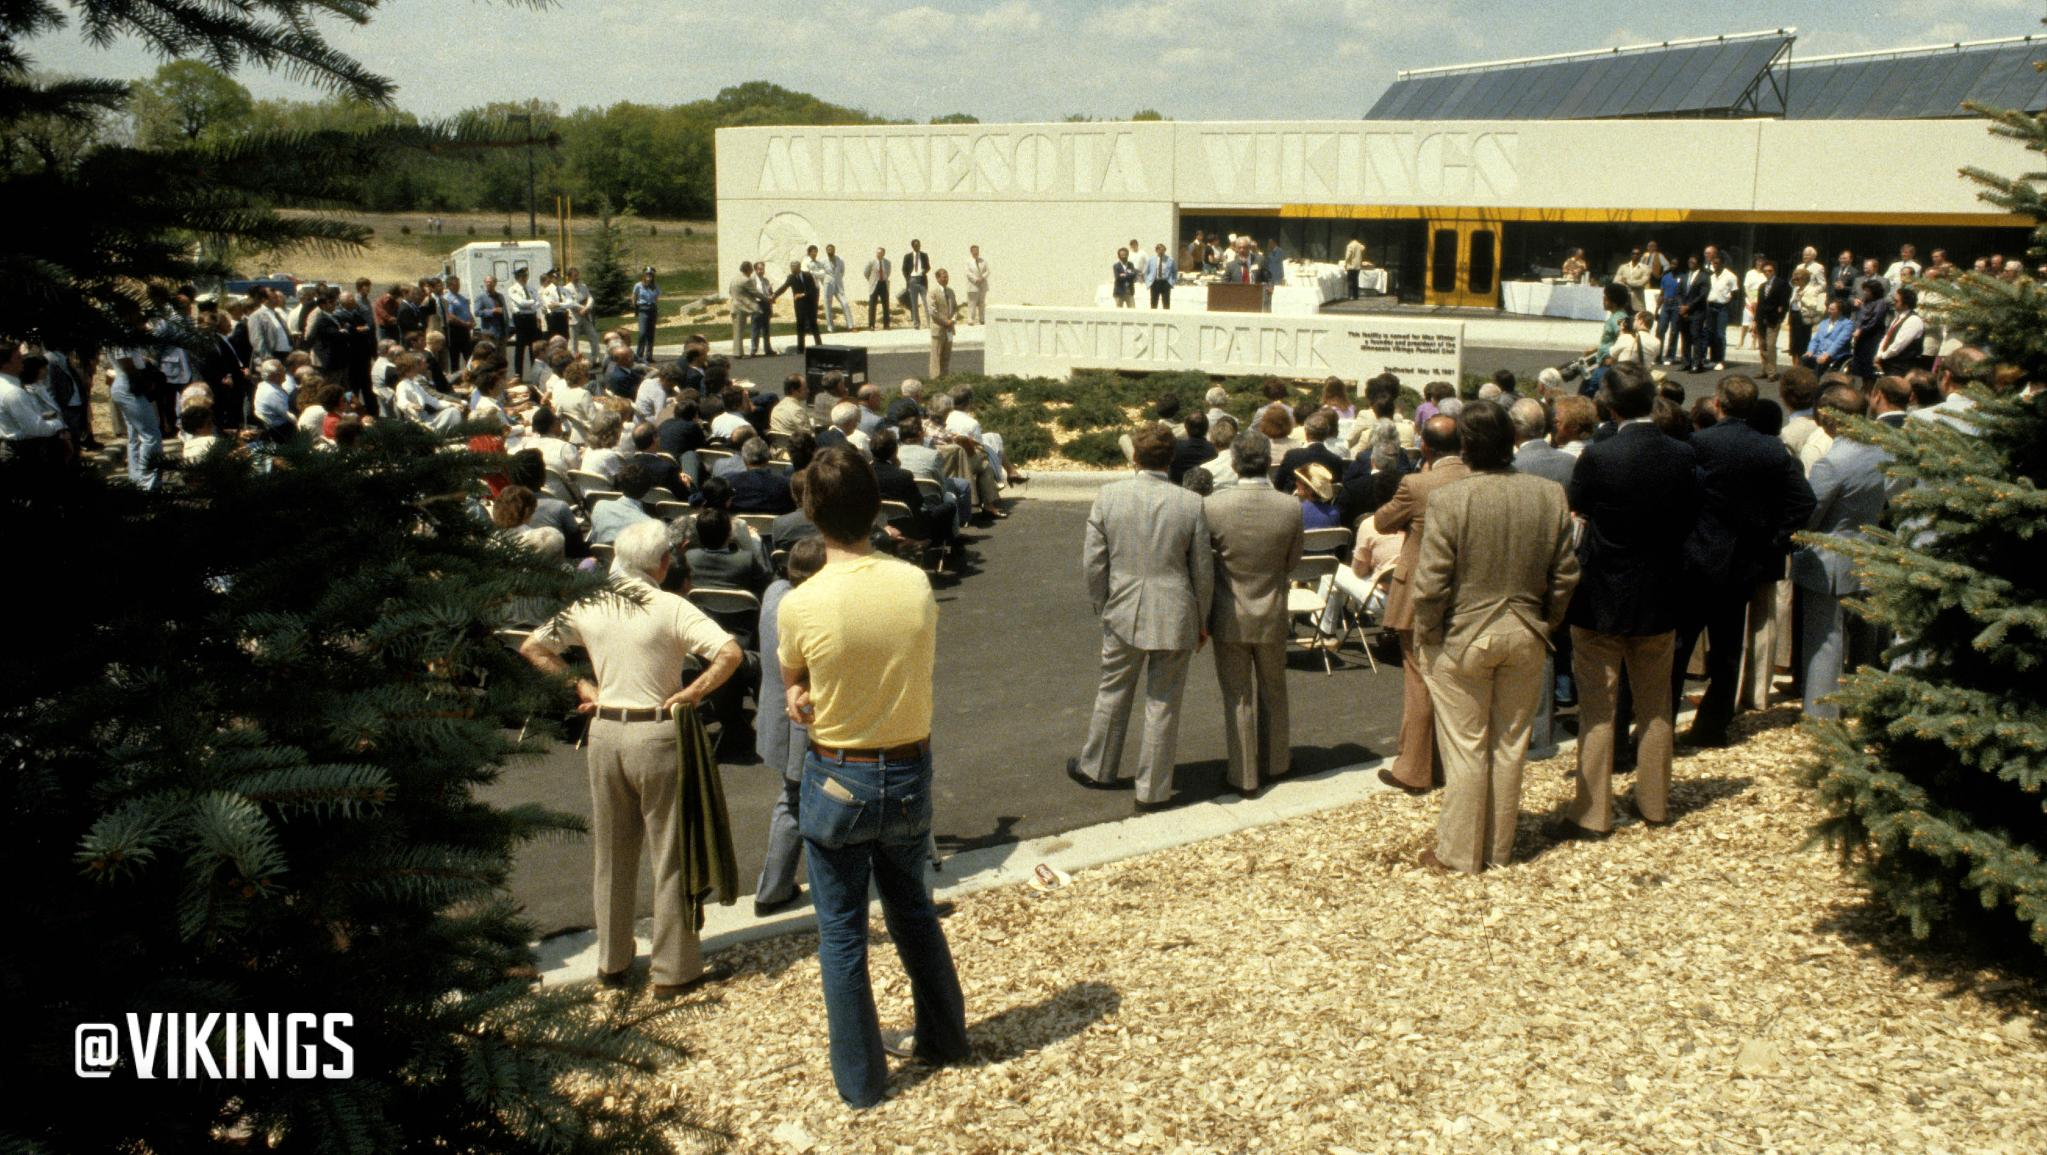 Winter Park has served as the #Vikings home since it opened on May 15, 1981. #tbt https://t.co/op9b7jUmxf